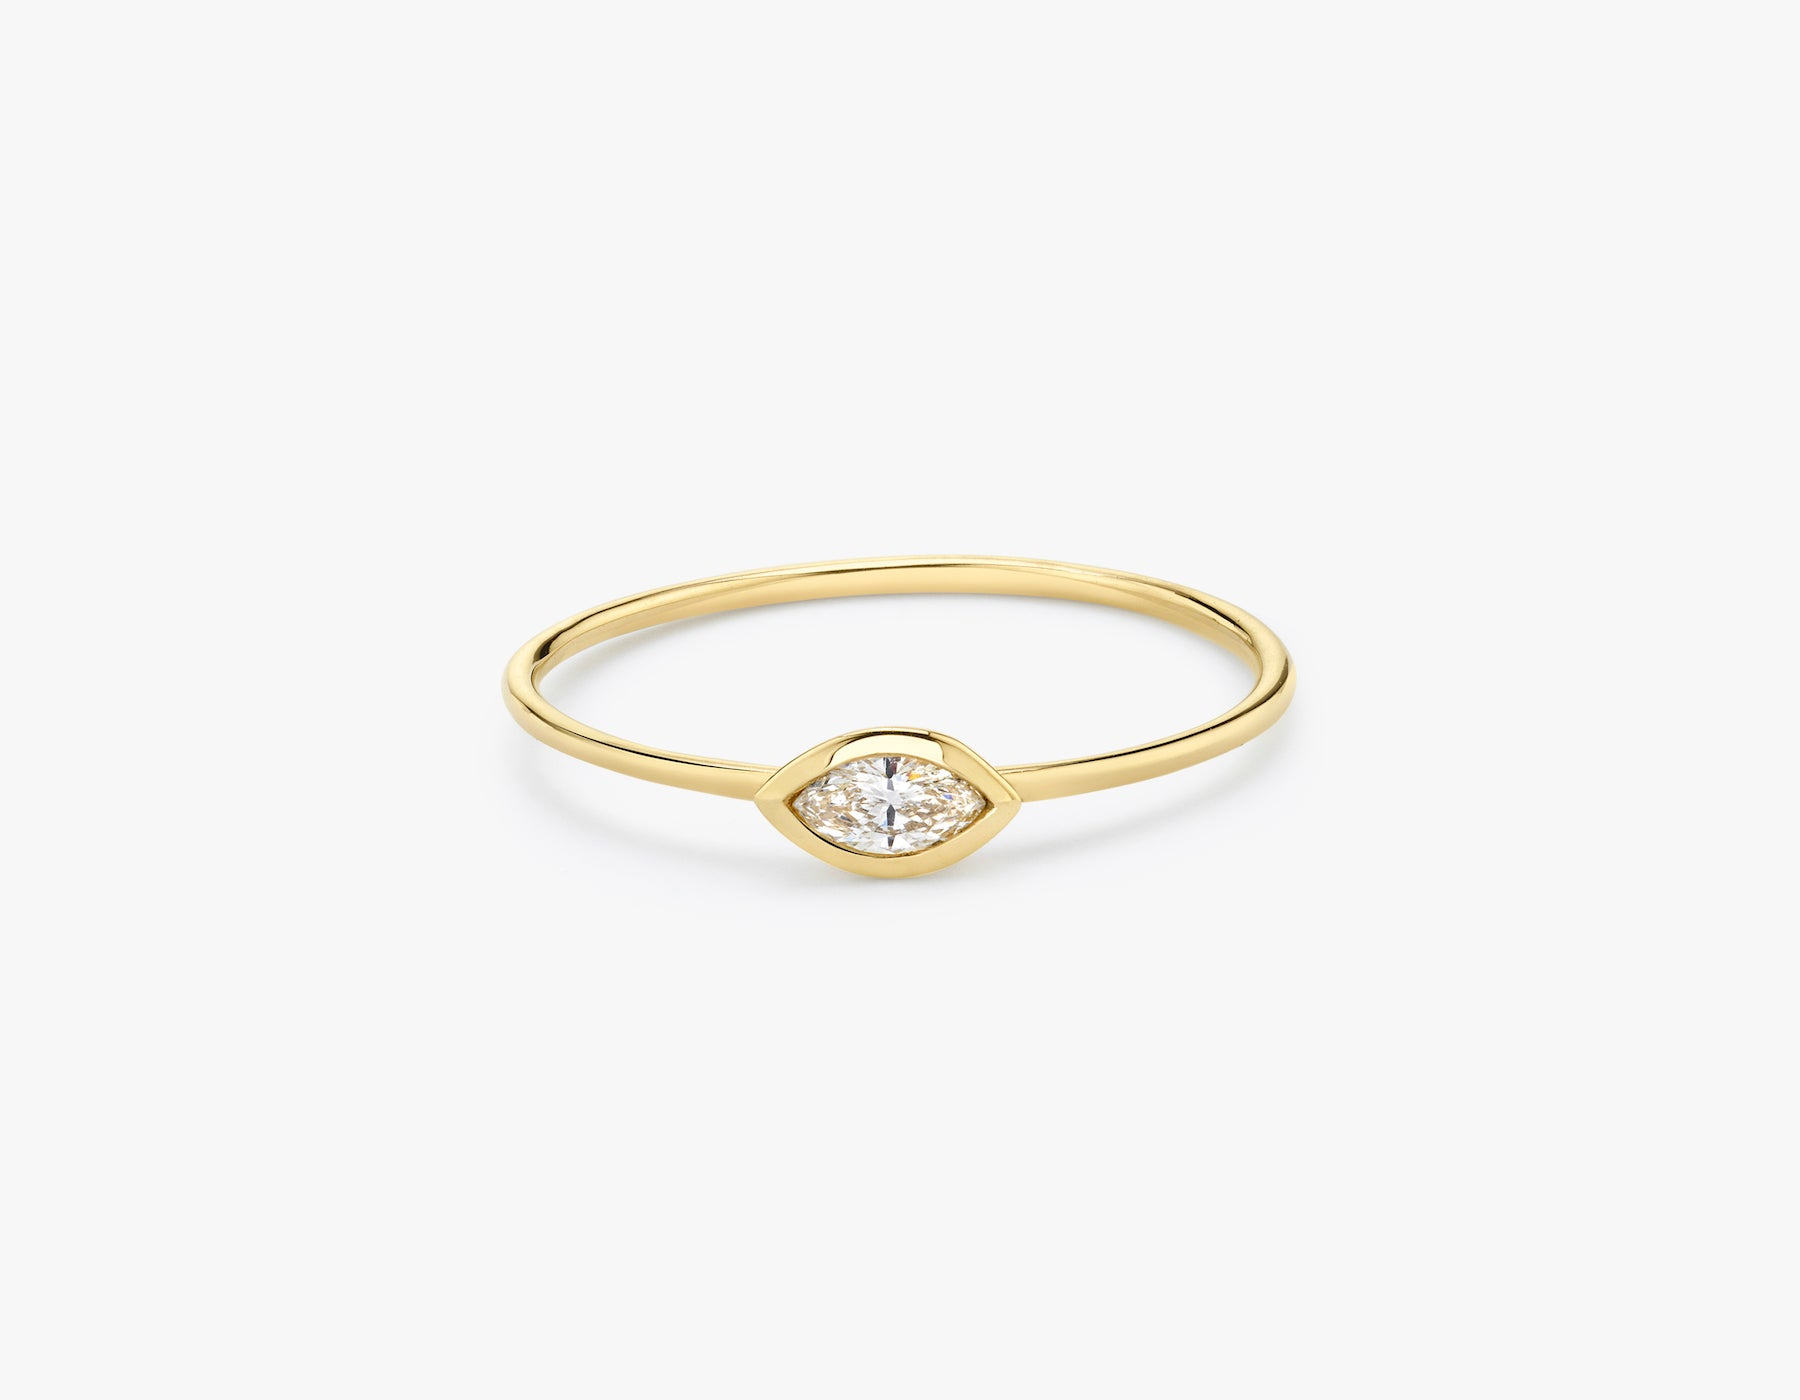 Vrai classic minimalist Marquise Diamond Bezel Ring, 14K Yellow Gold